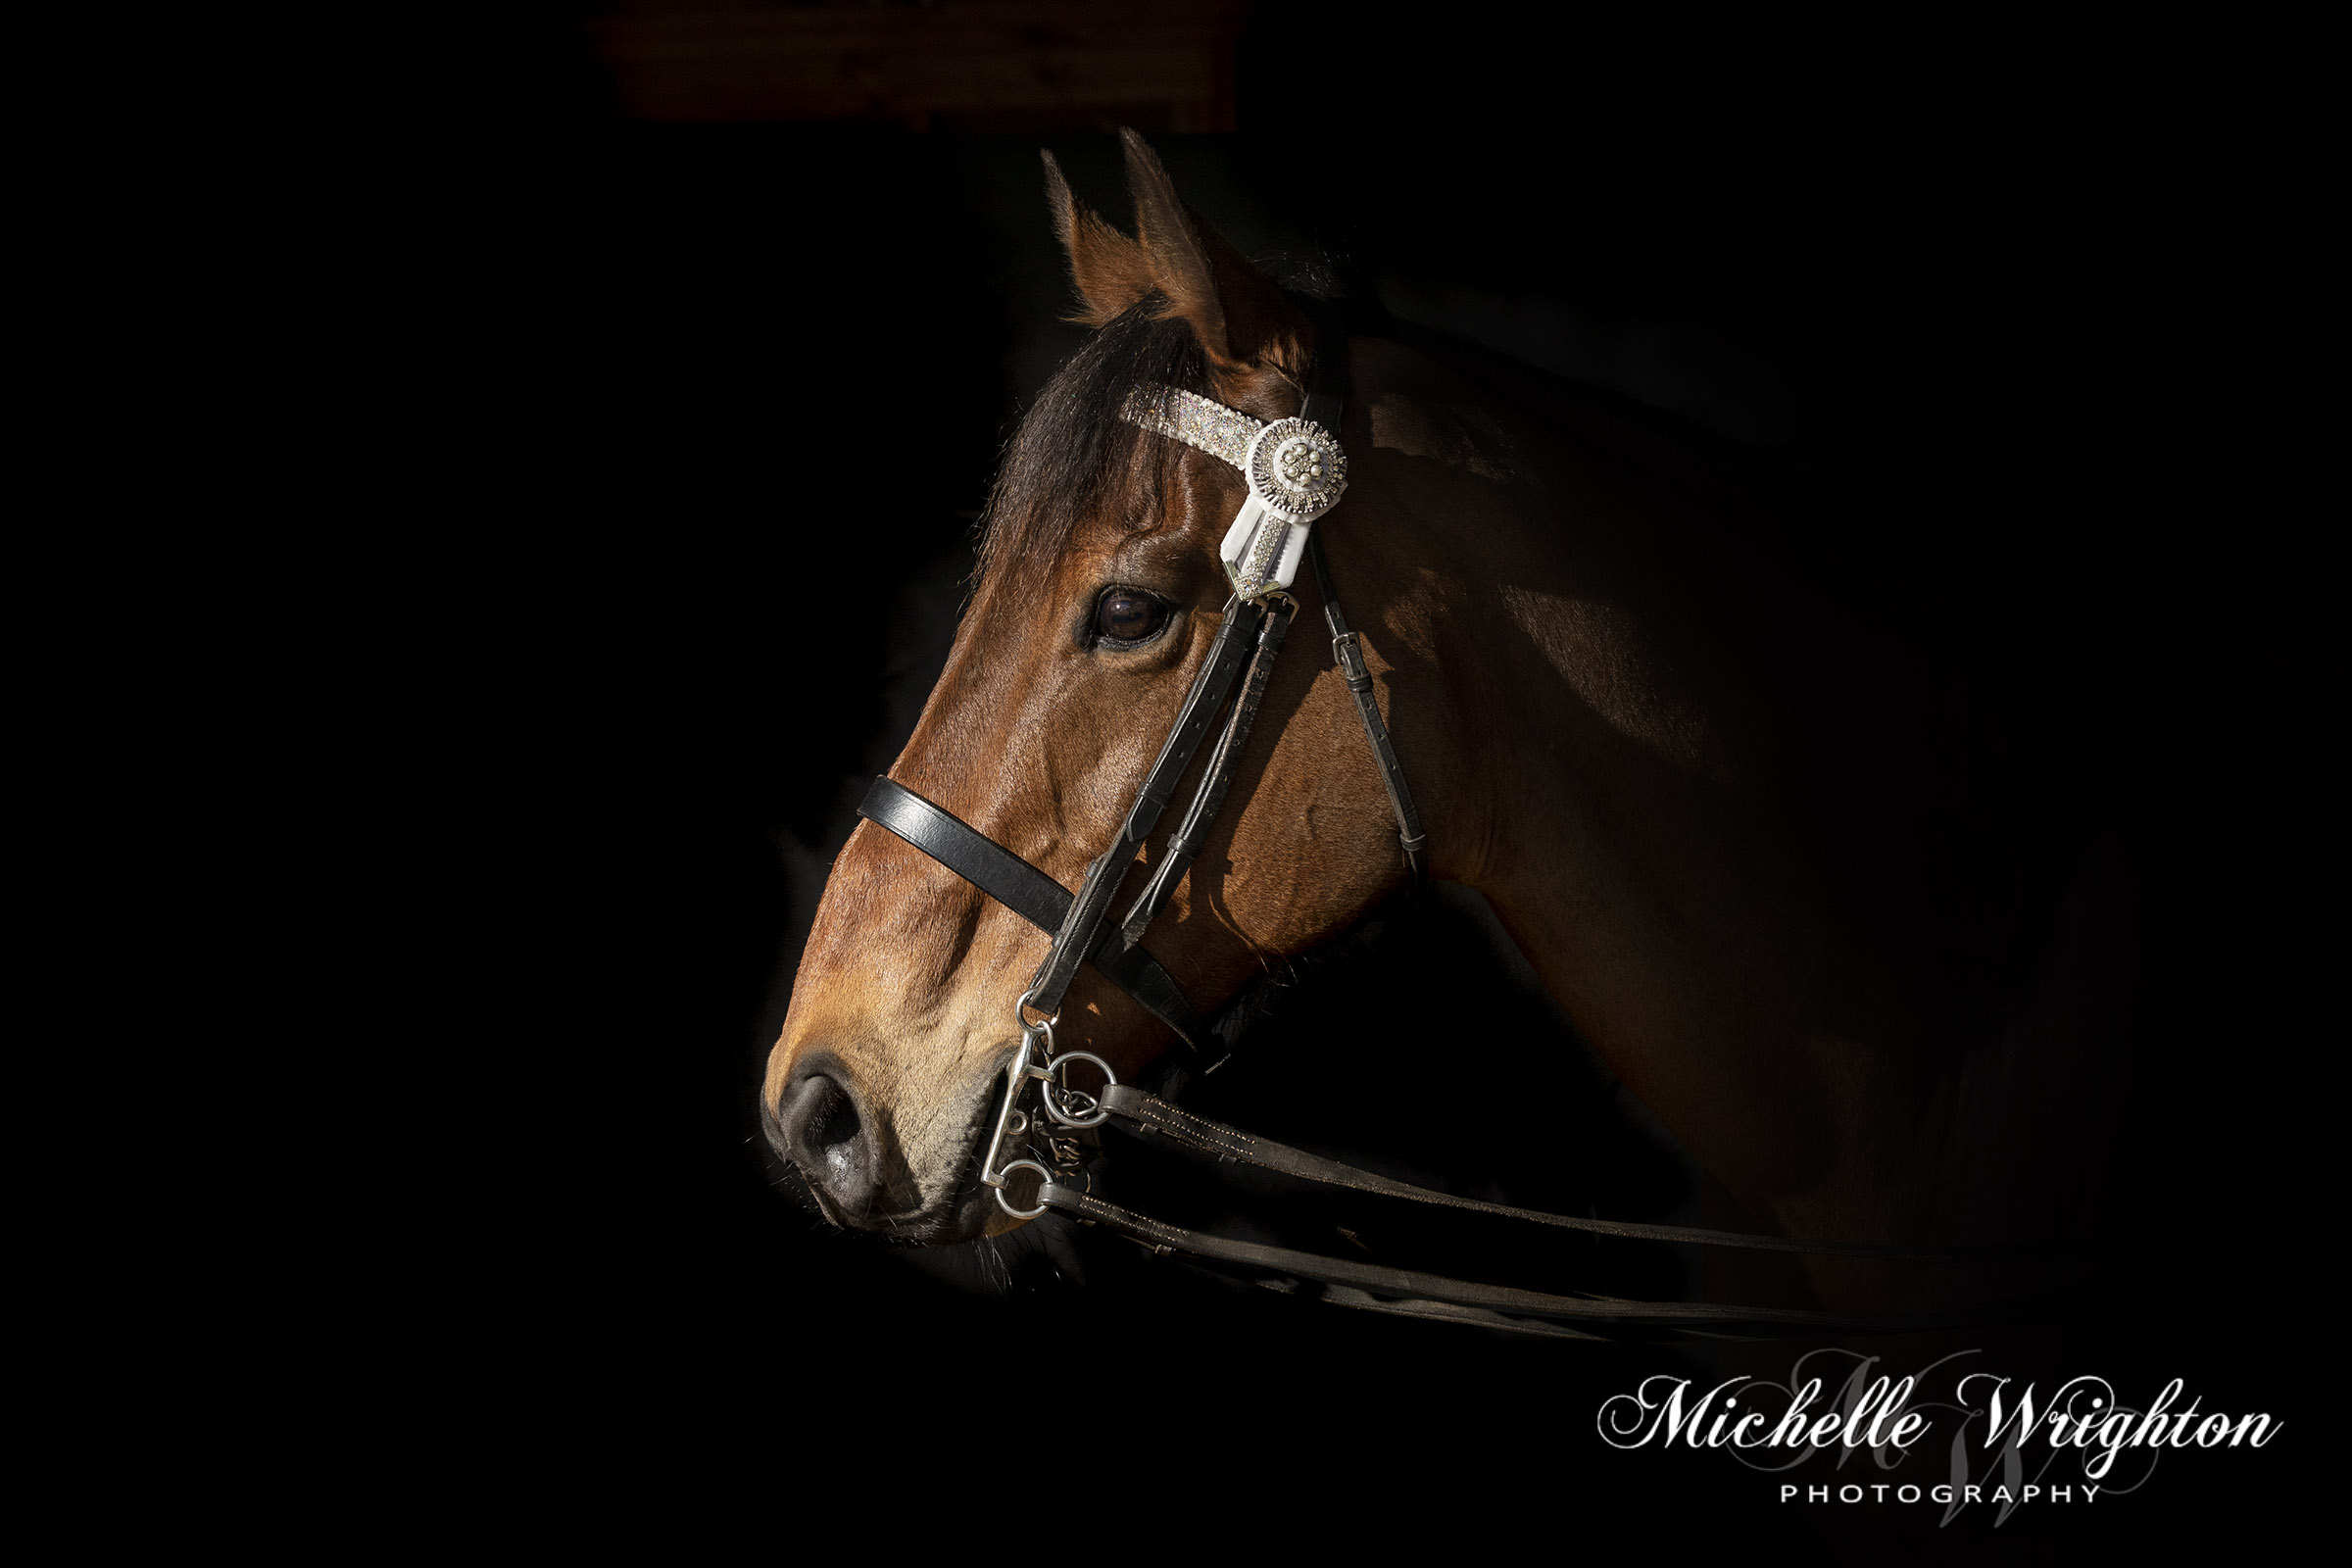 Black background Horse Portrait Photography gallery image